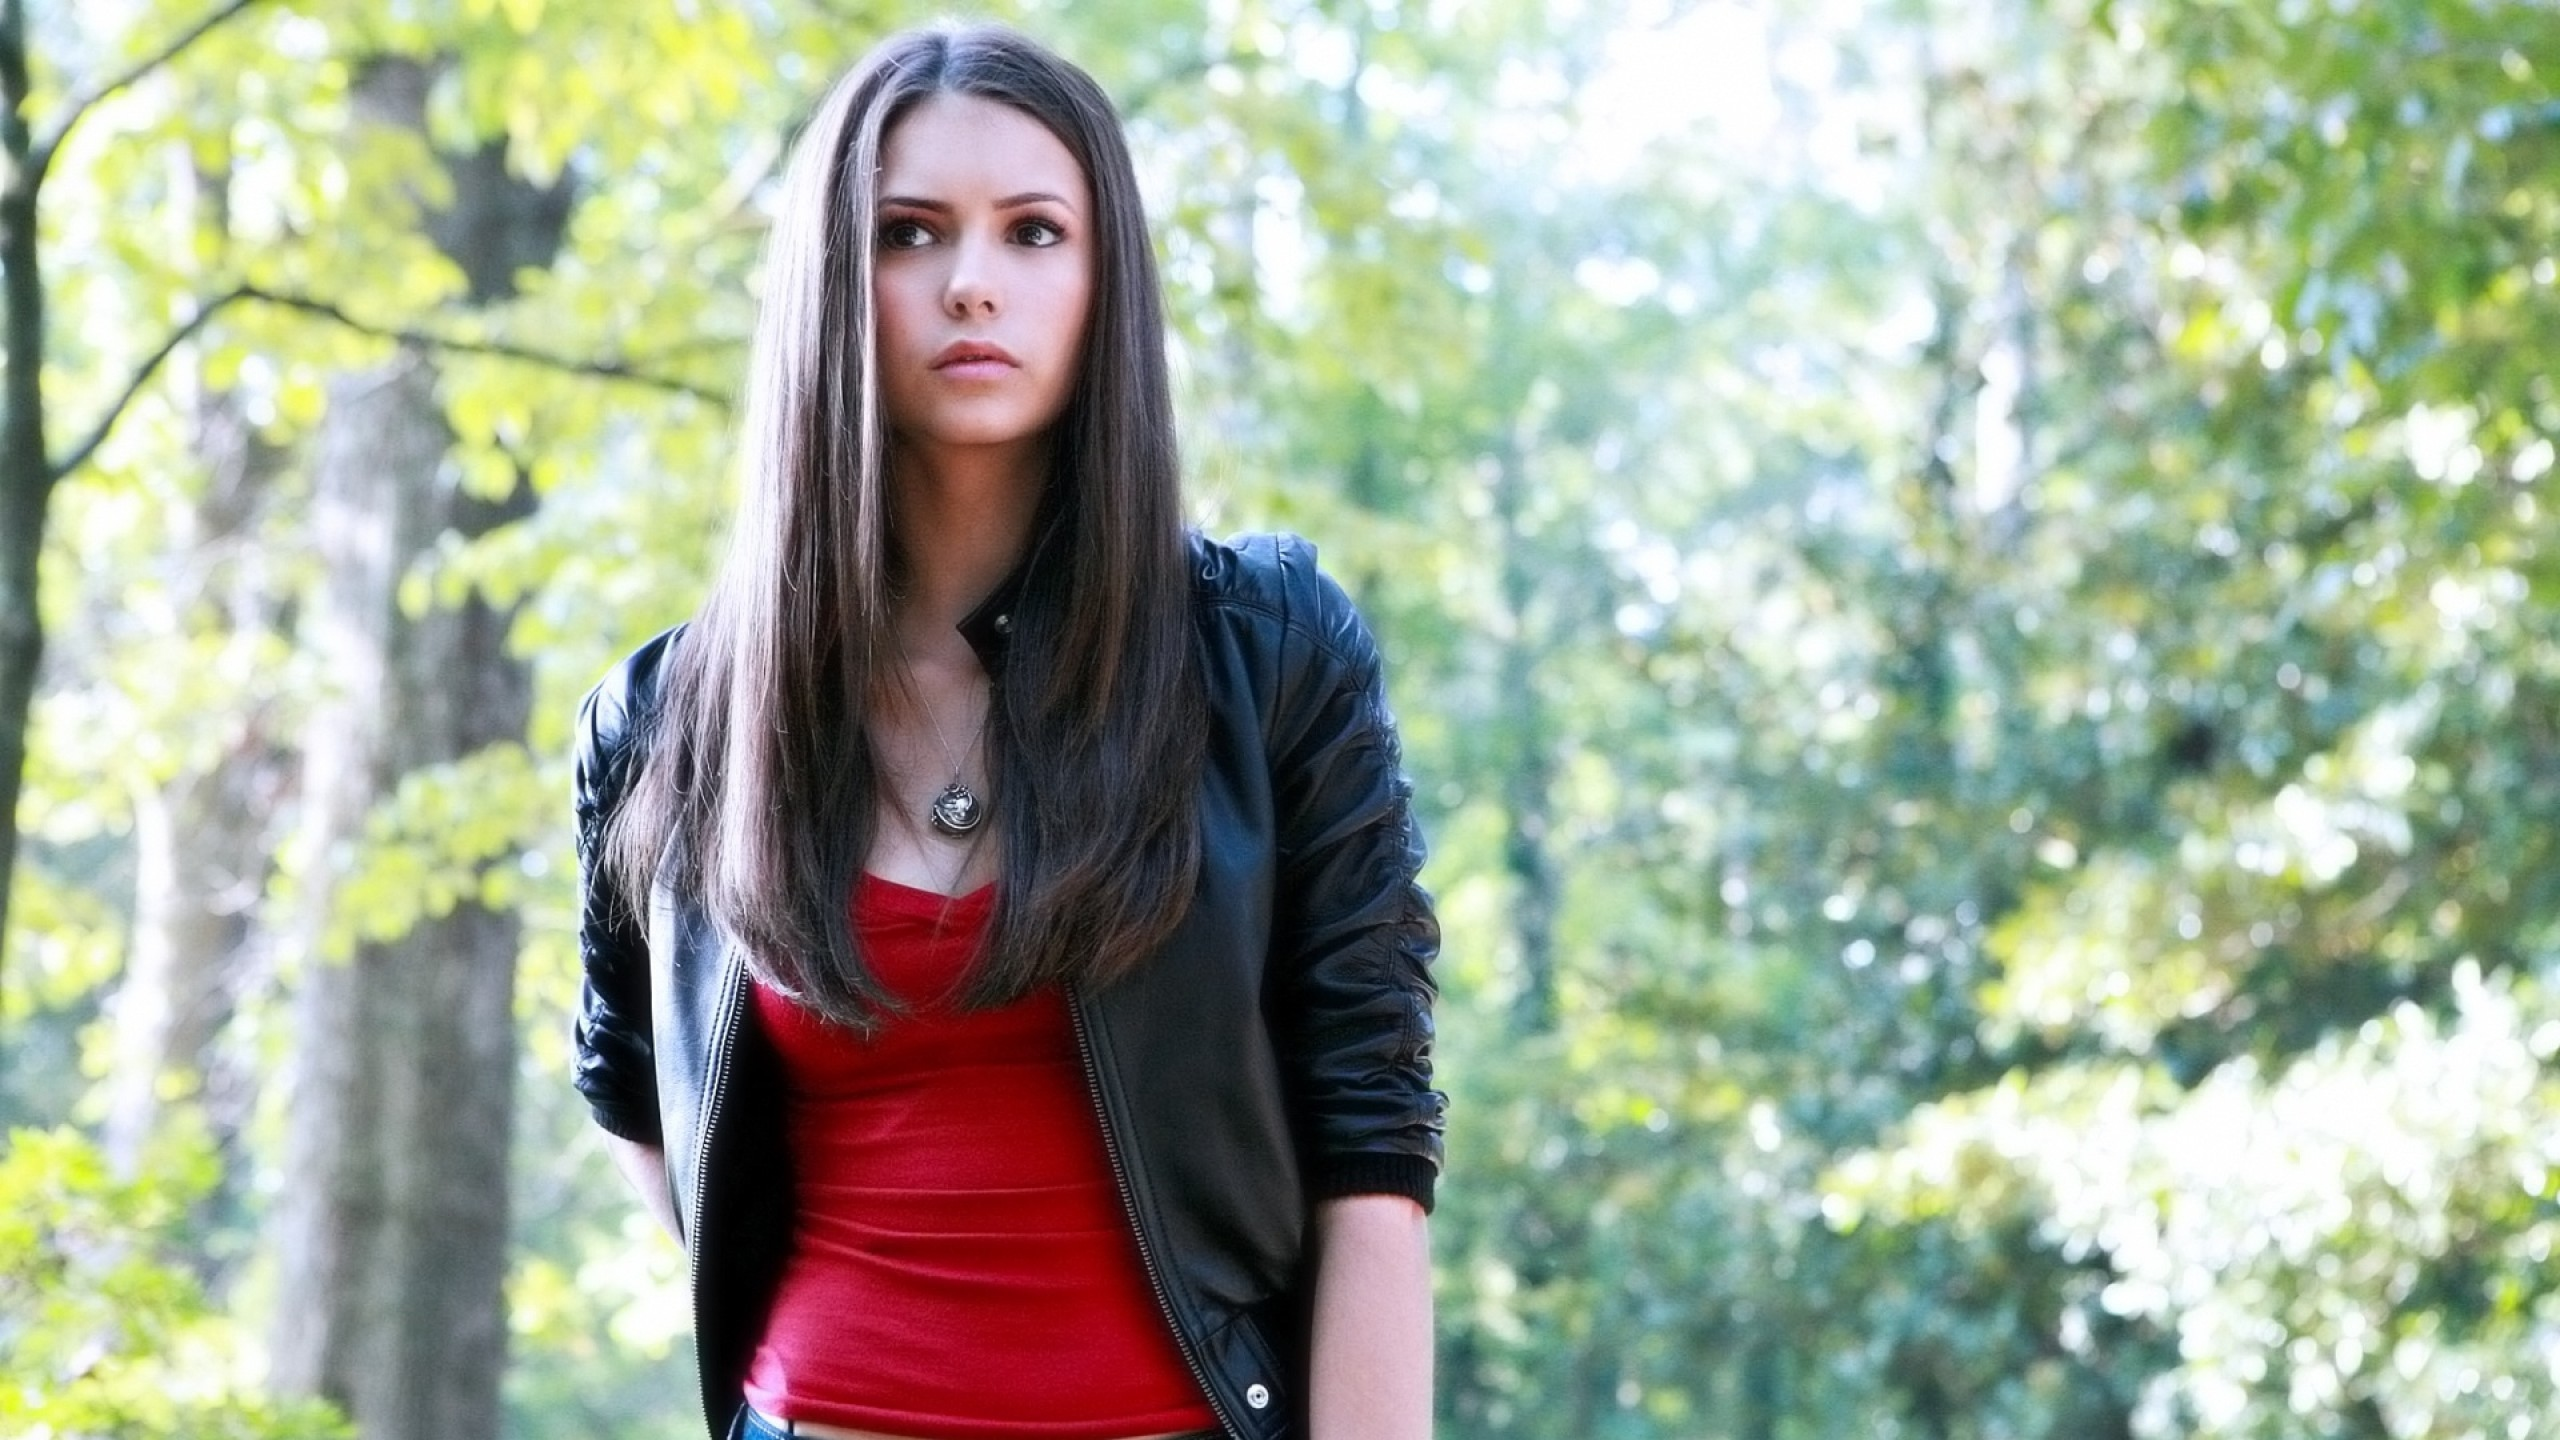 2560x1440 Wallpaper nina dobrev, brunette, actress, timber, style